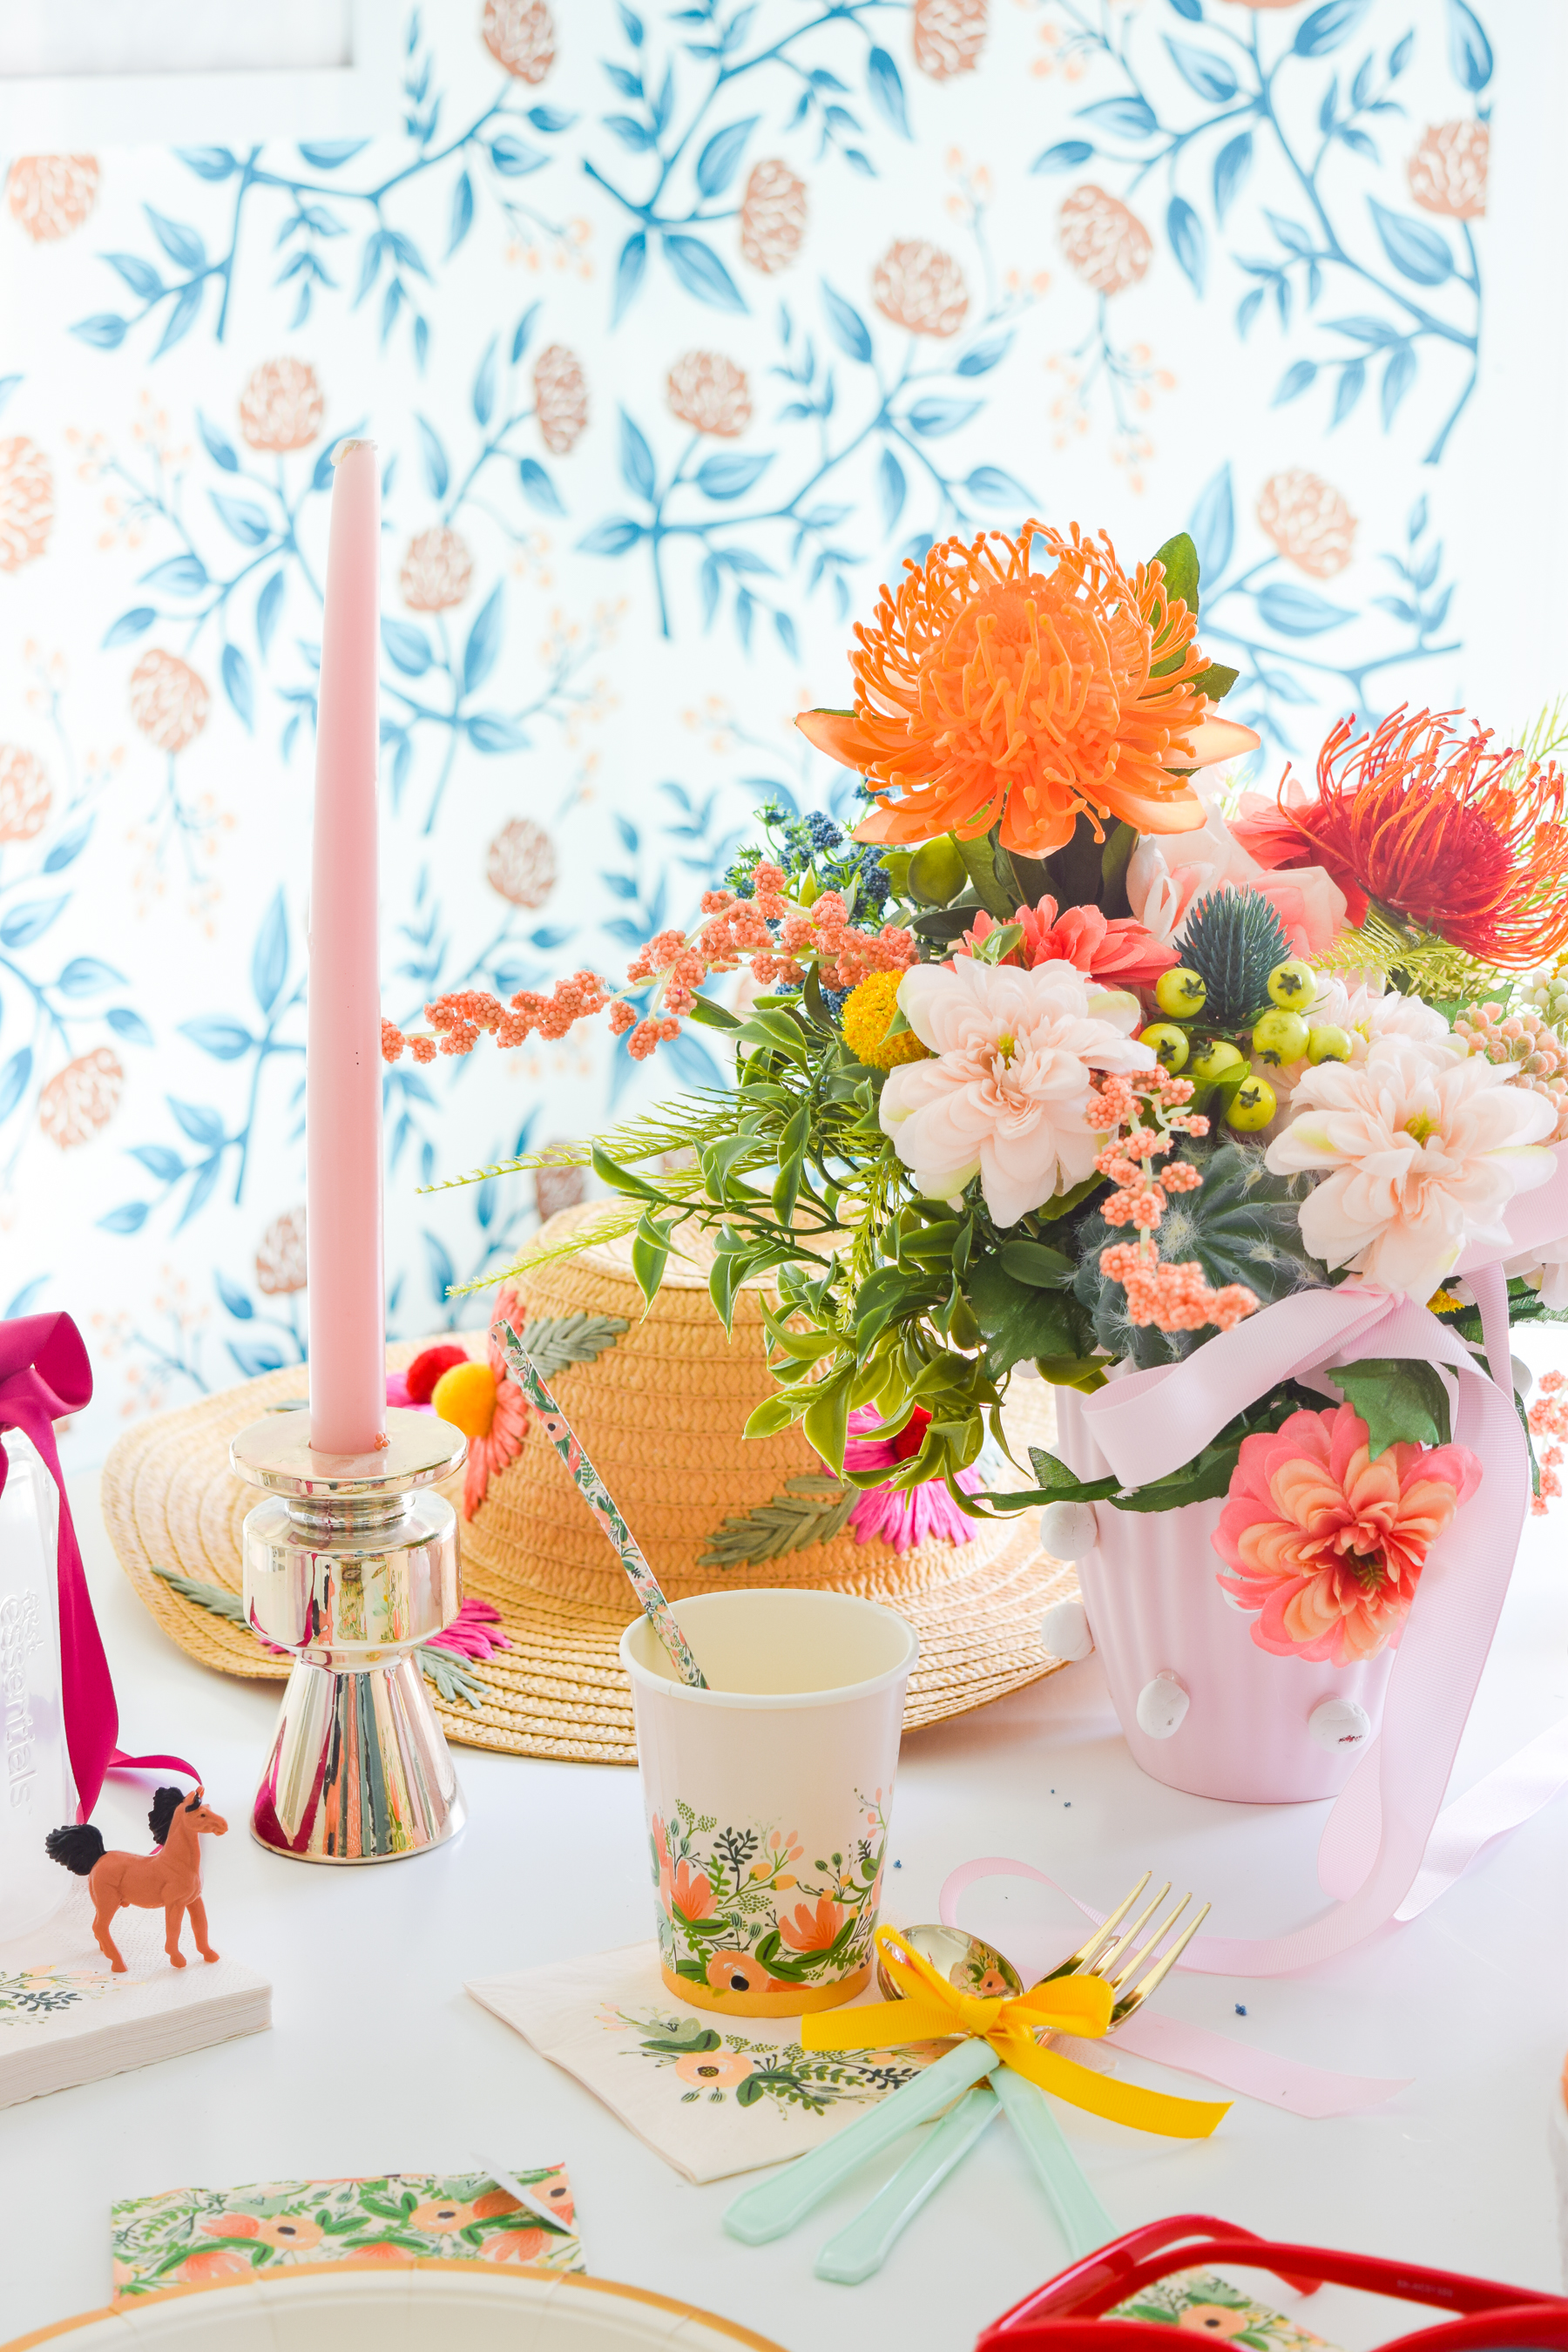 A Derby Day Baby Shower is the perfect way to celebrate a summer baby, and Rifle Paper Co's Wildflower party collection is what you need to things started.